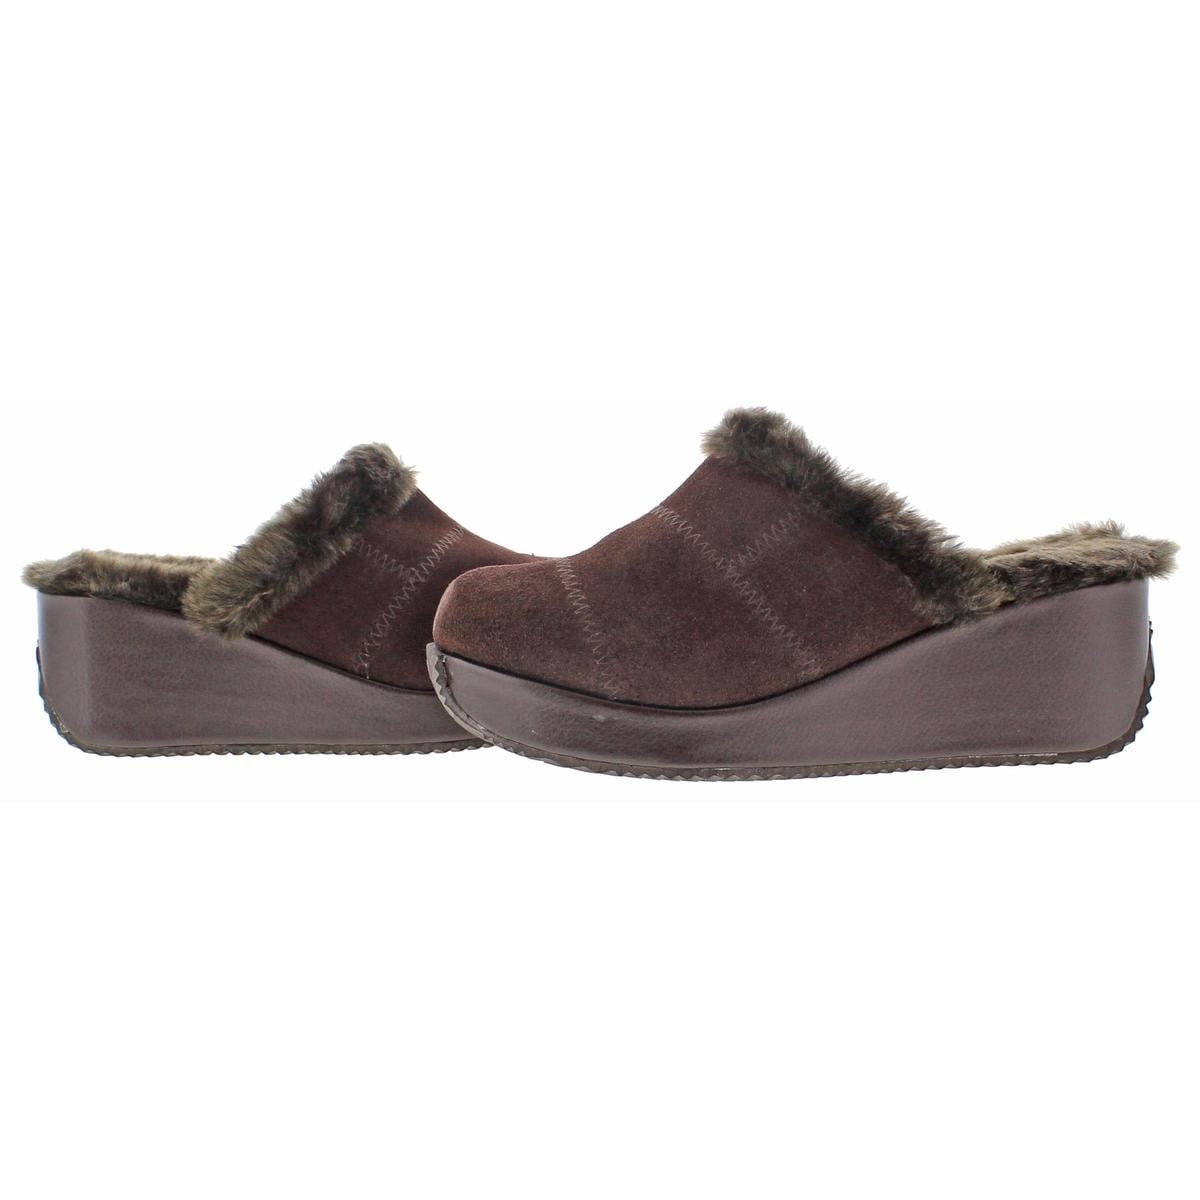 6869d59ca0 Shop Volatile Womens Impressive Clogs Faux Fur Wedge - Free Shipping On  Orders Over $45 - Overstock.com - 15881632